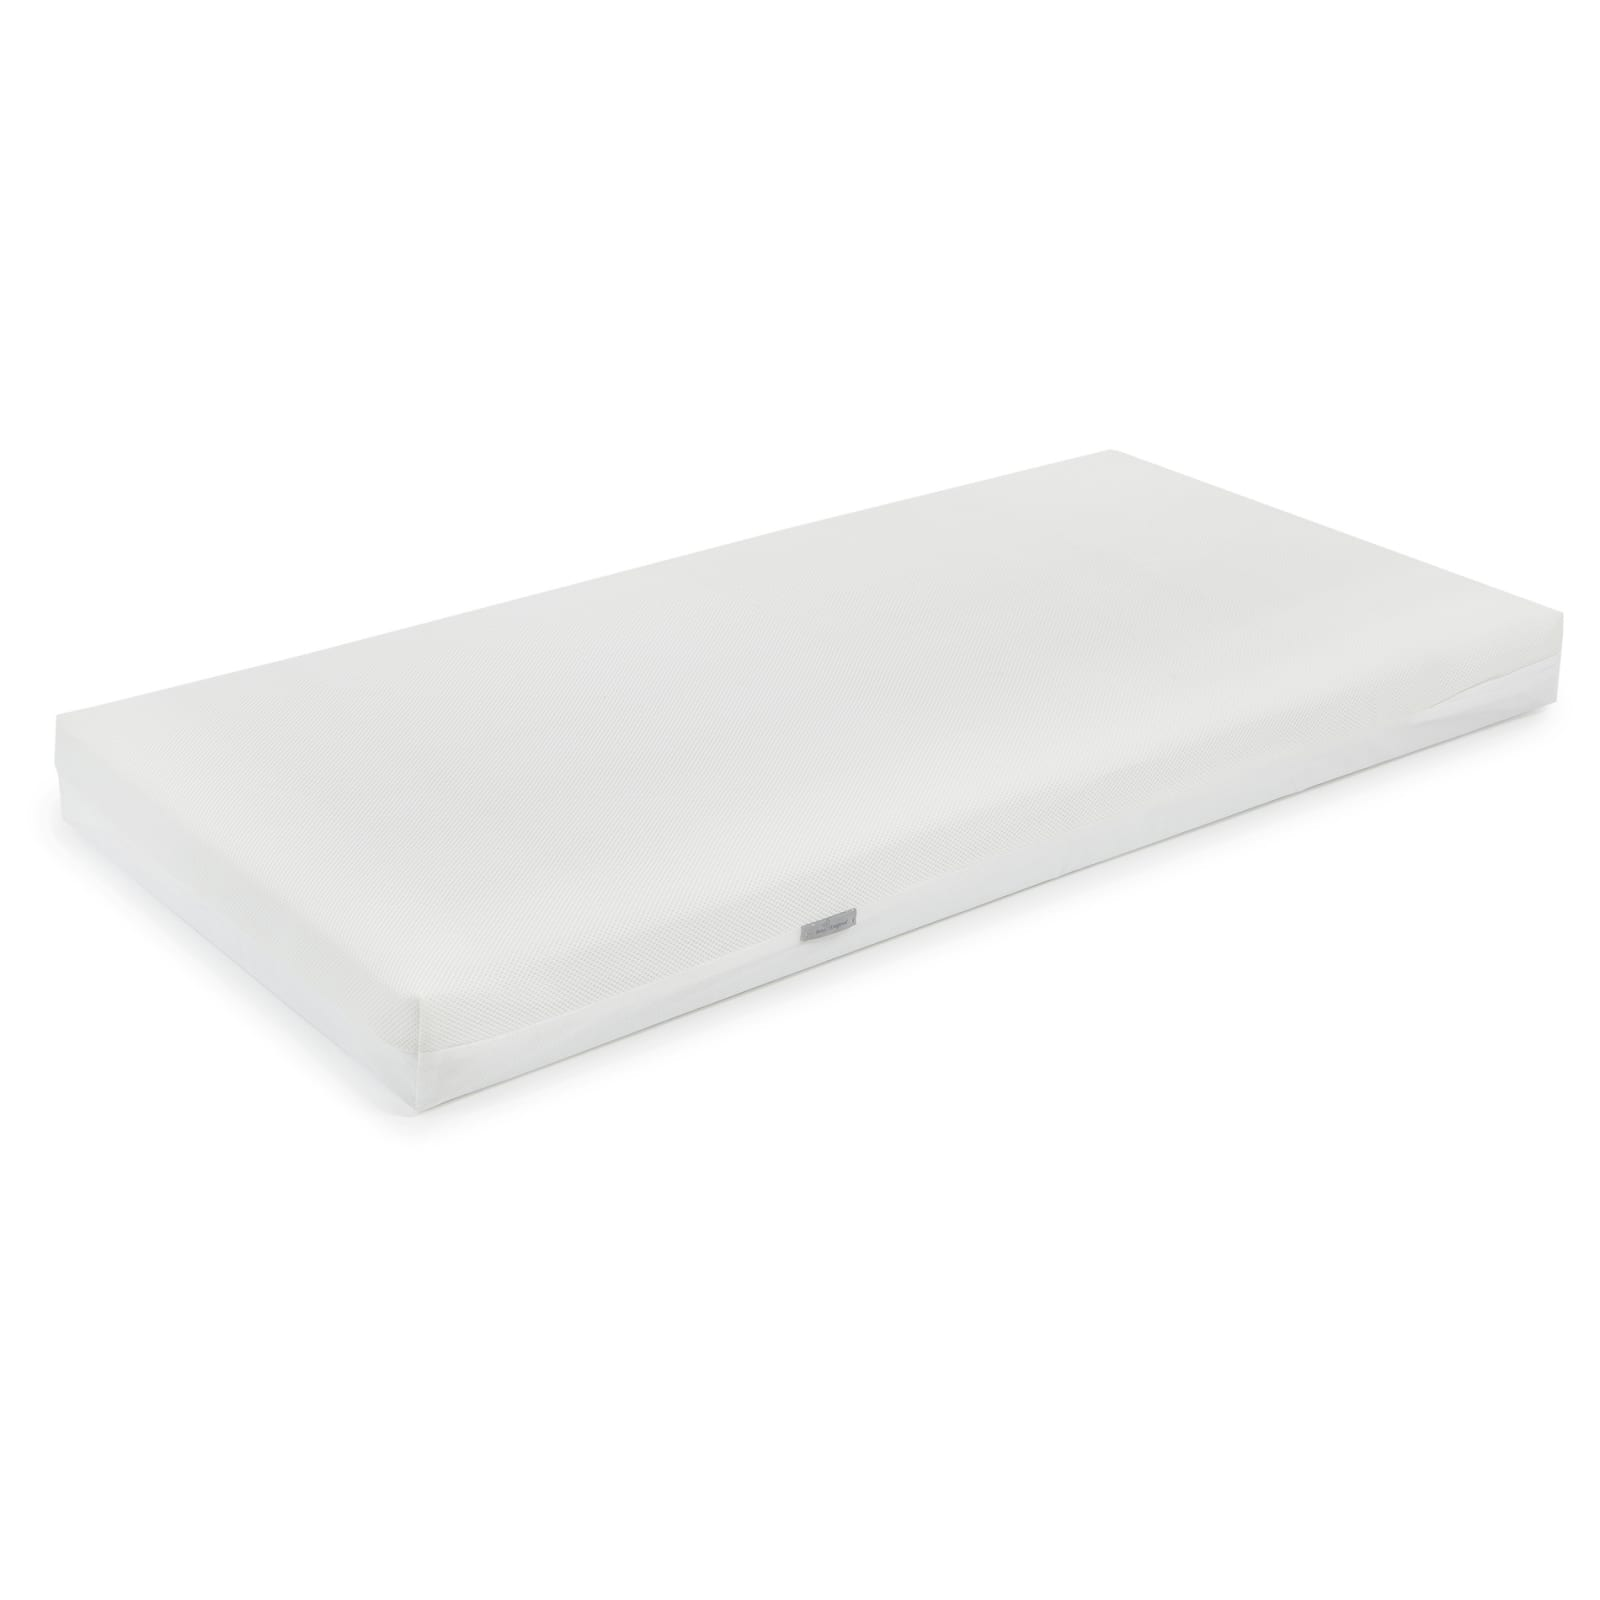 Breathe-Dry Fibre Mattress – Cot Bed – 70x140x10cm product image